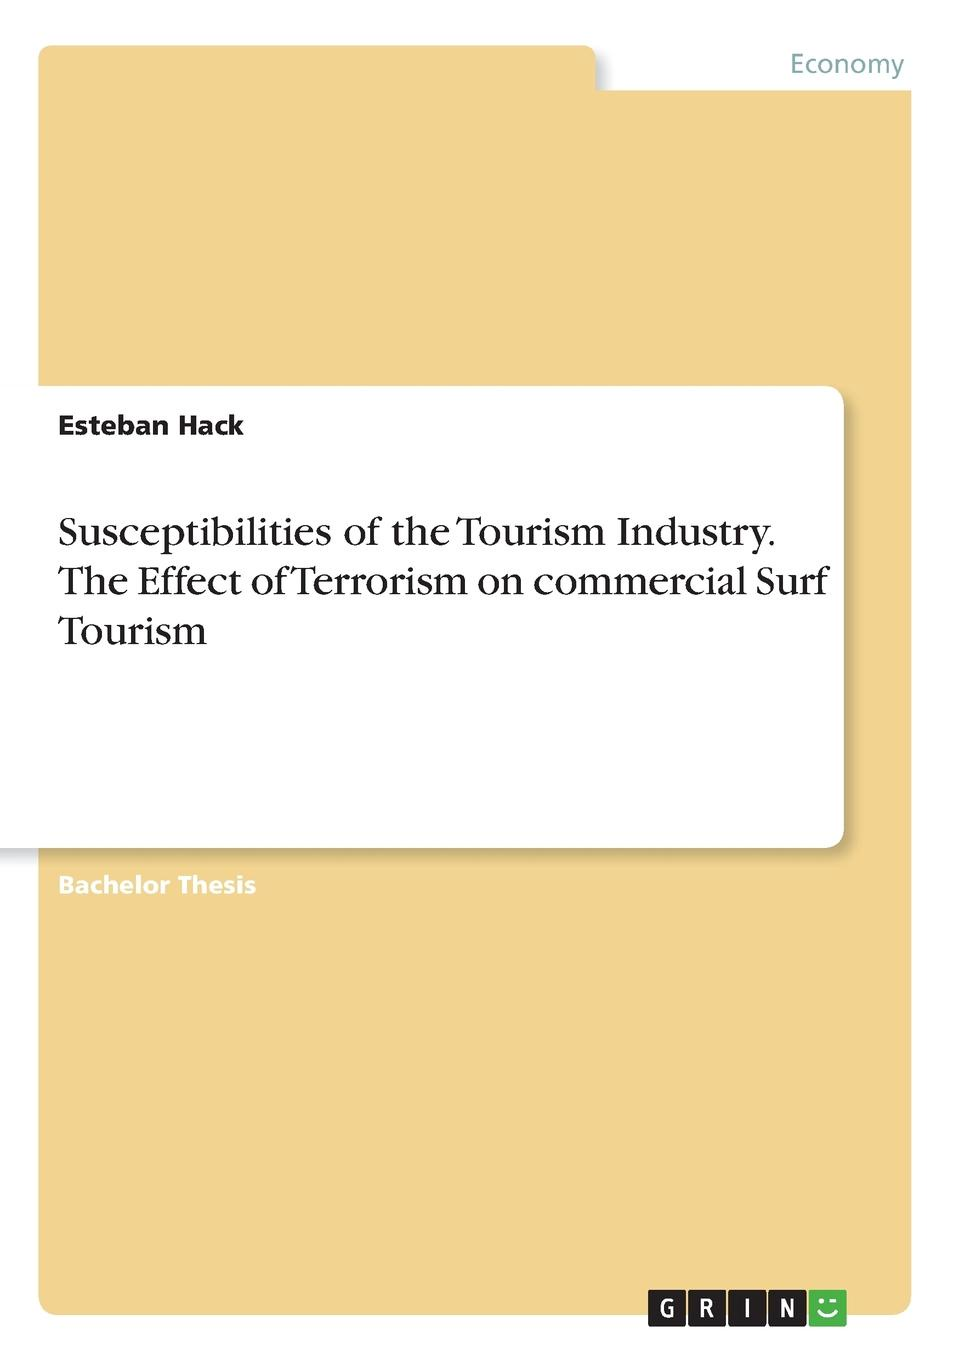 Esteban Hack Susceptibilities of the Tourism Industry. The Effect of Terrorism on commercial Surf Tourism